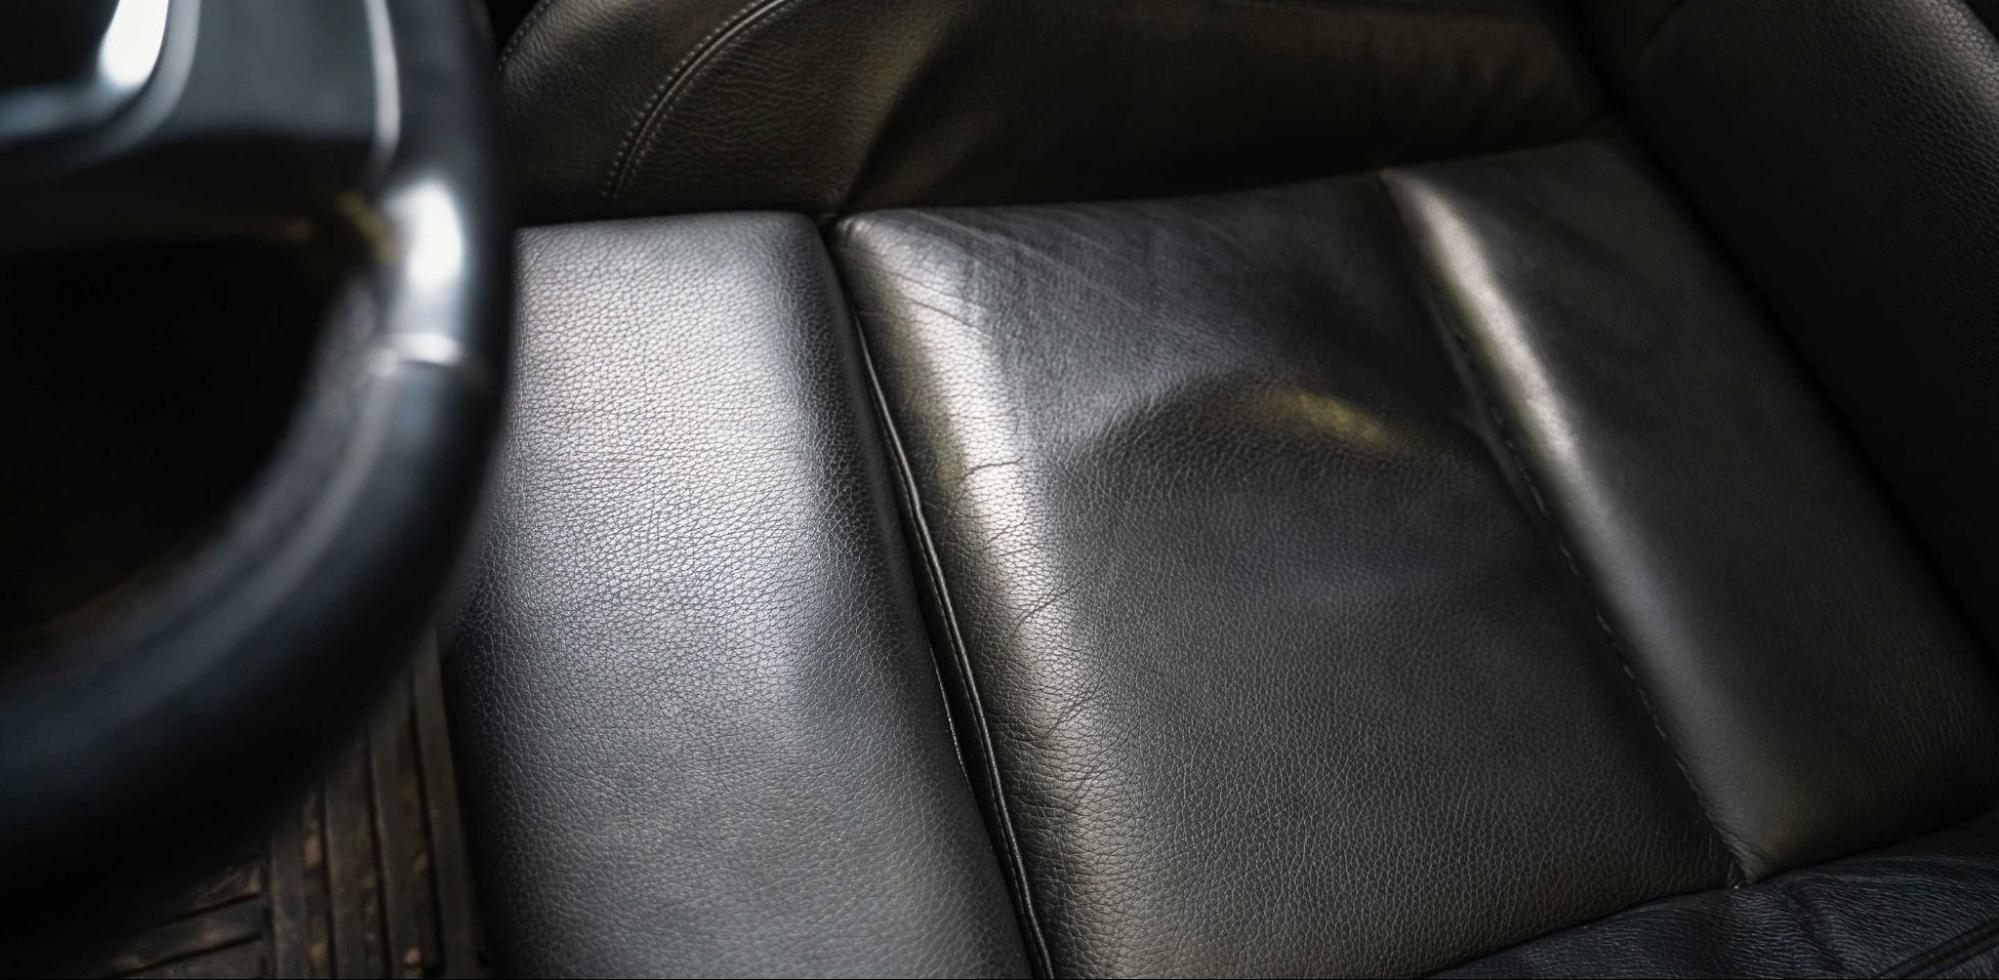 Remove Stretch Marks from Leather Car Seat